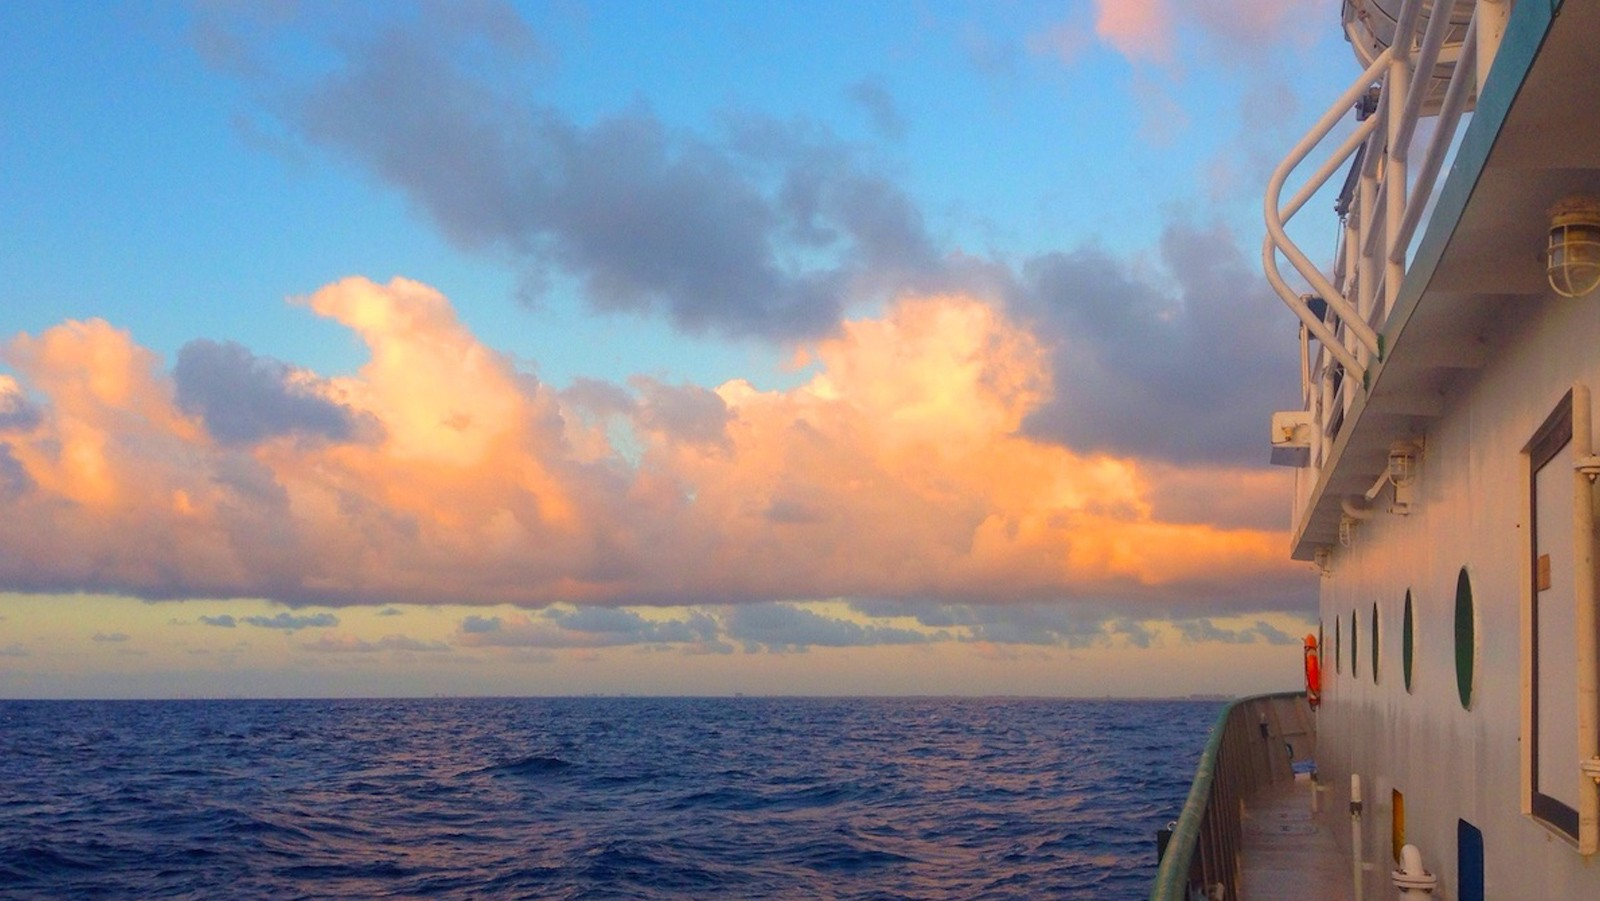 Sunset aboard the R/V F.G. Walton Smith. Image credit: NOAA